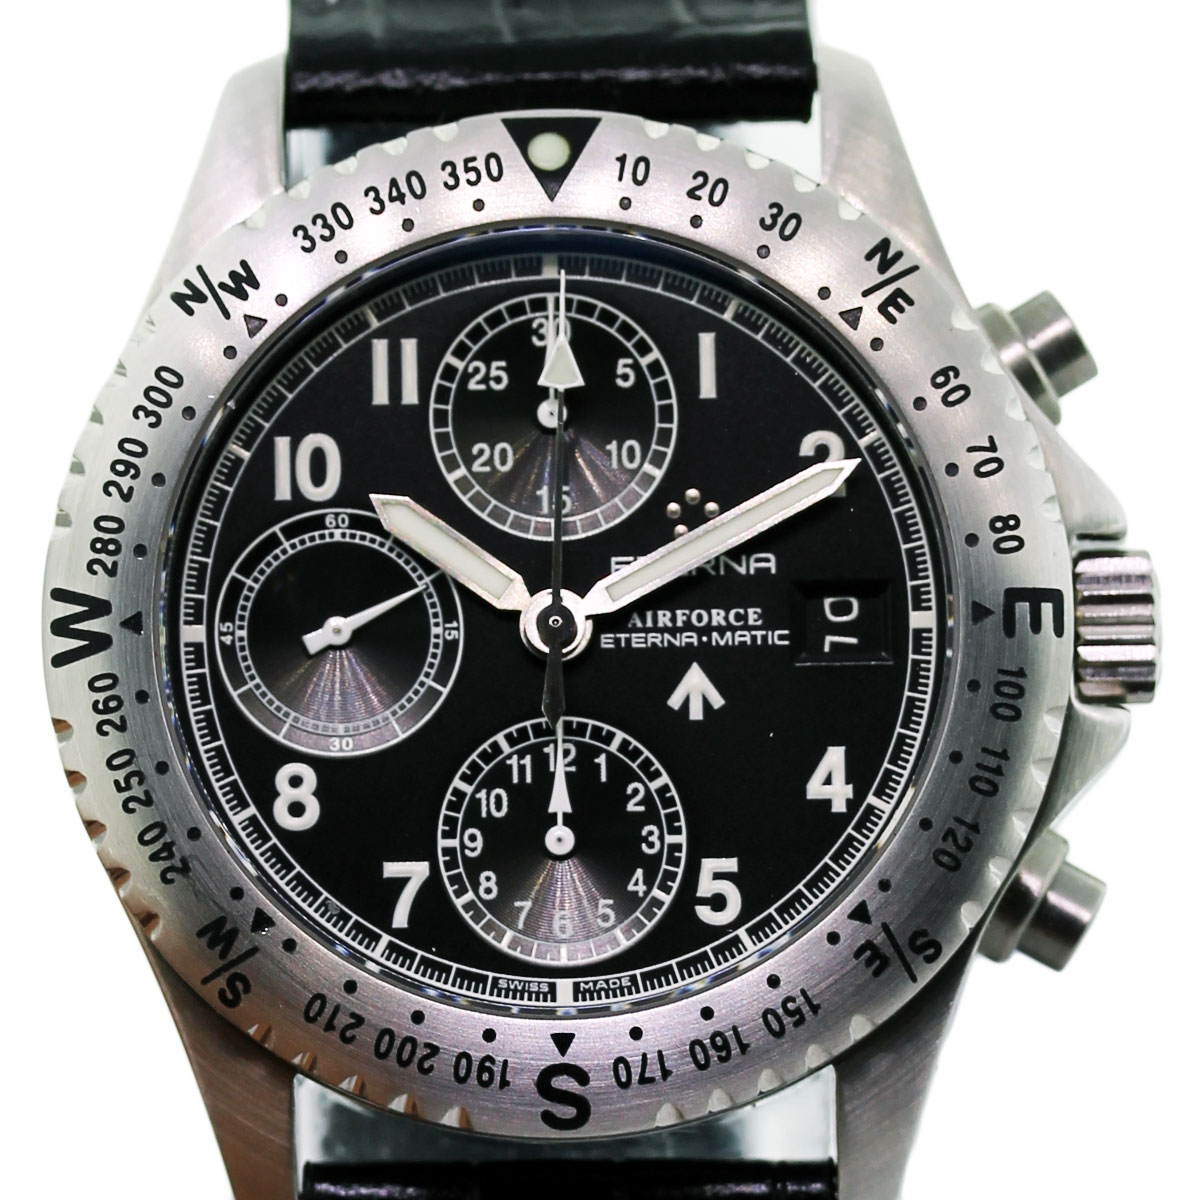 Eterna Chrono Airforce 8418 41 40 1106 Chronograph Men S Watch